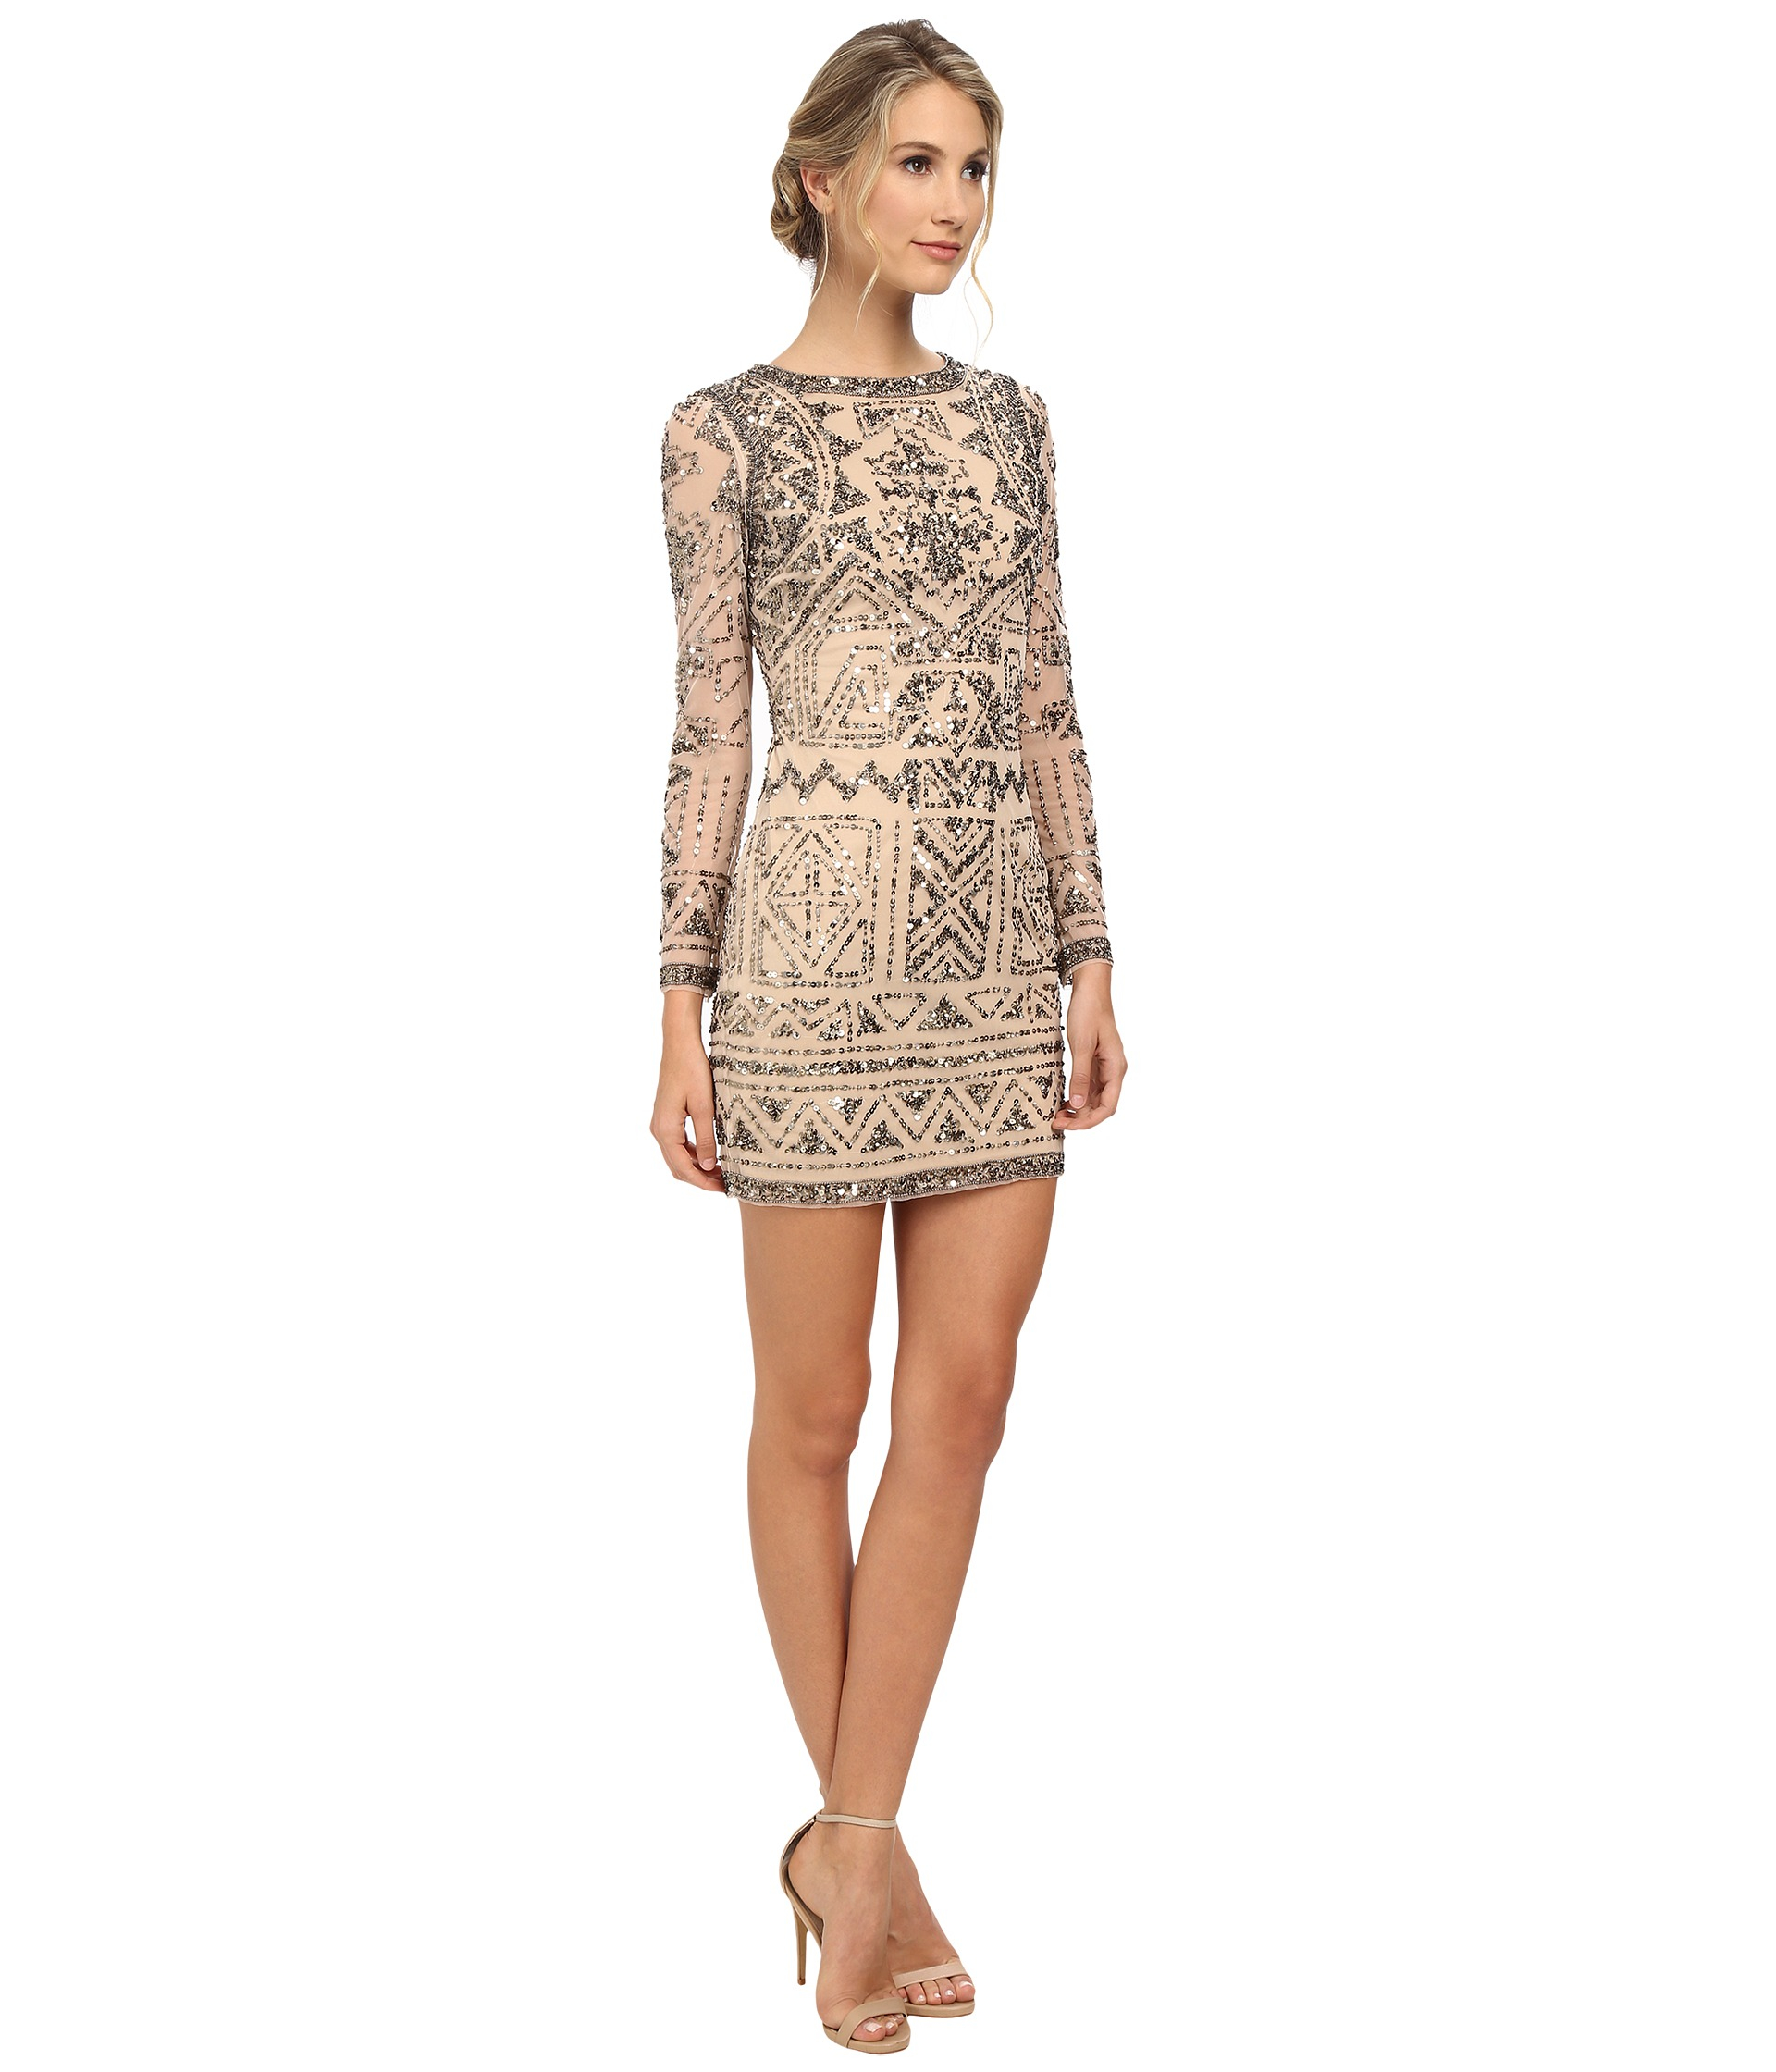 Grand Adrianna Papell Light Blush Long Sleeve Beaded Cocktail Dress Pink Product 0 126572708 Normal Long Sleeve Cocktail Dresses Madi Length Long Sleeve Cocktail Dresses Size 6 wedding dress Long Sleeve Cocktail Dresses